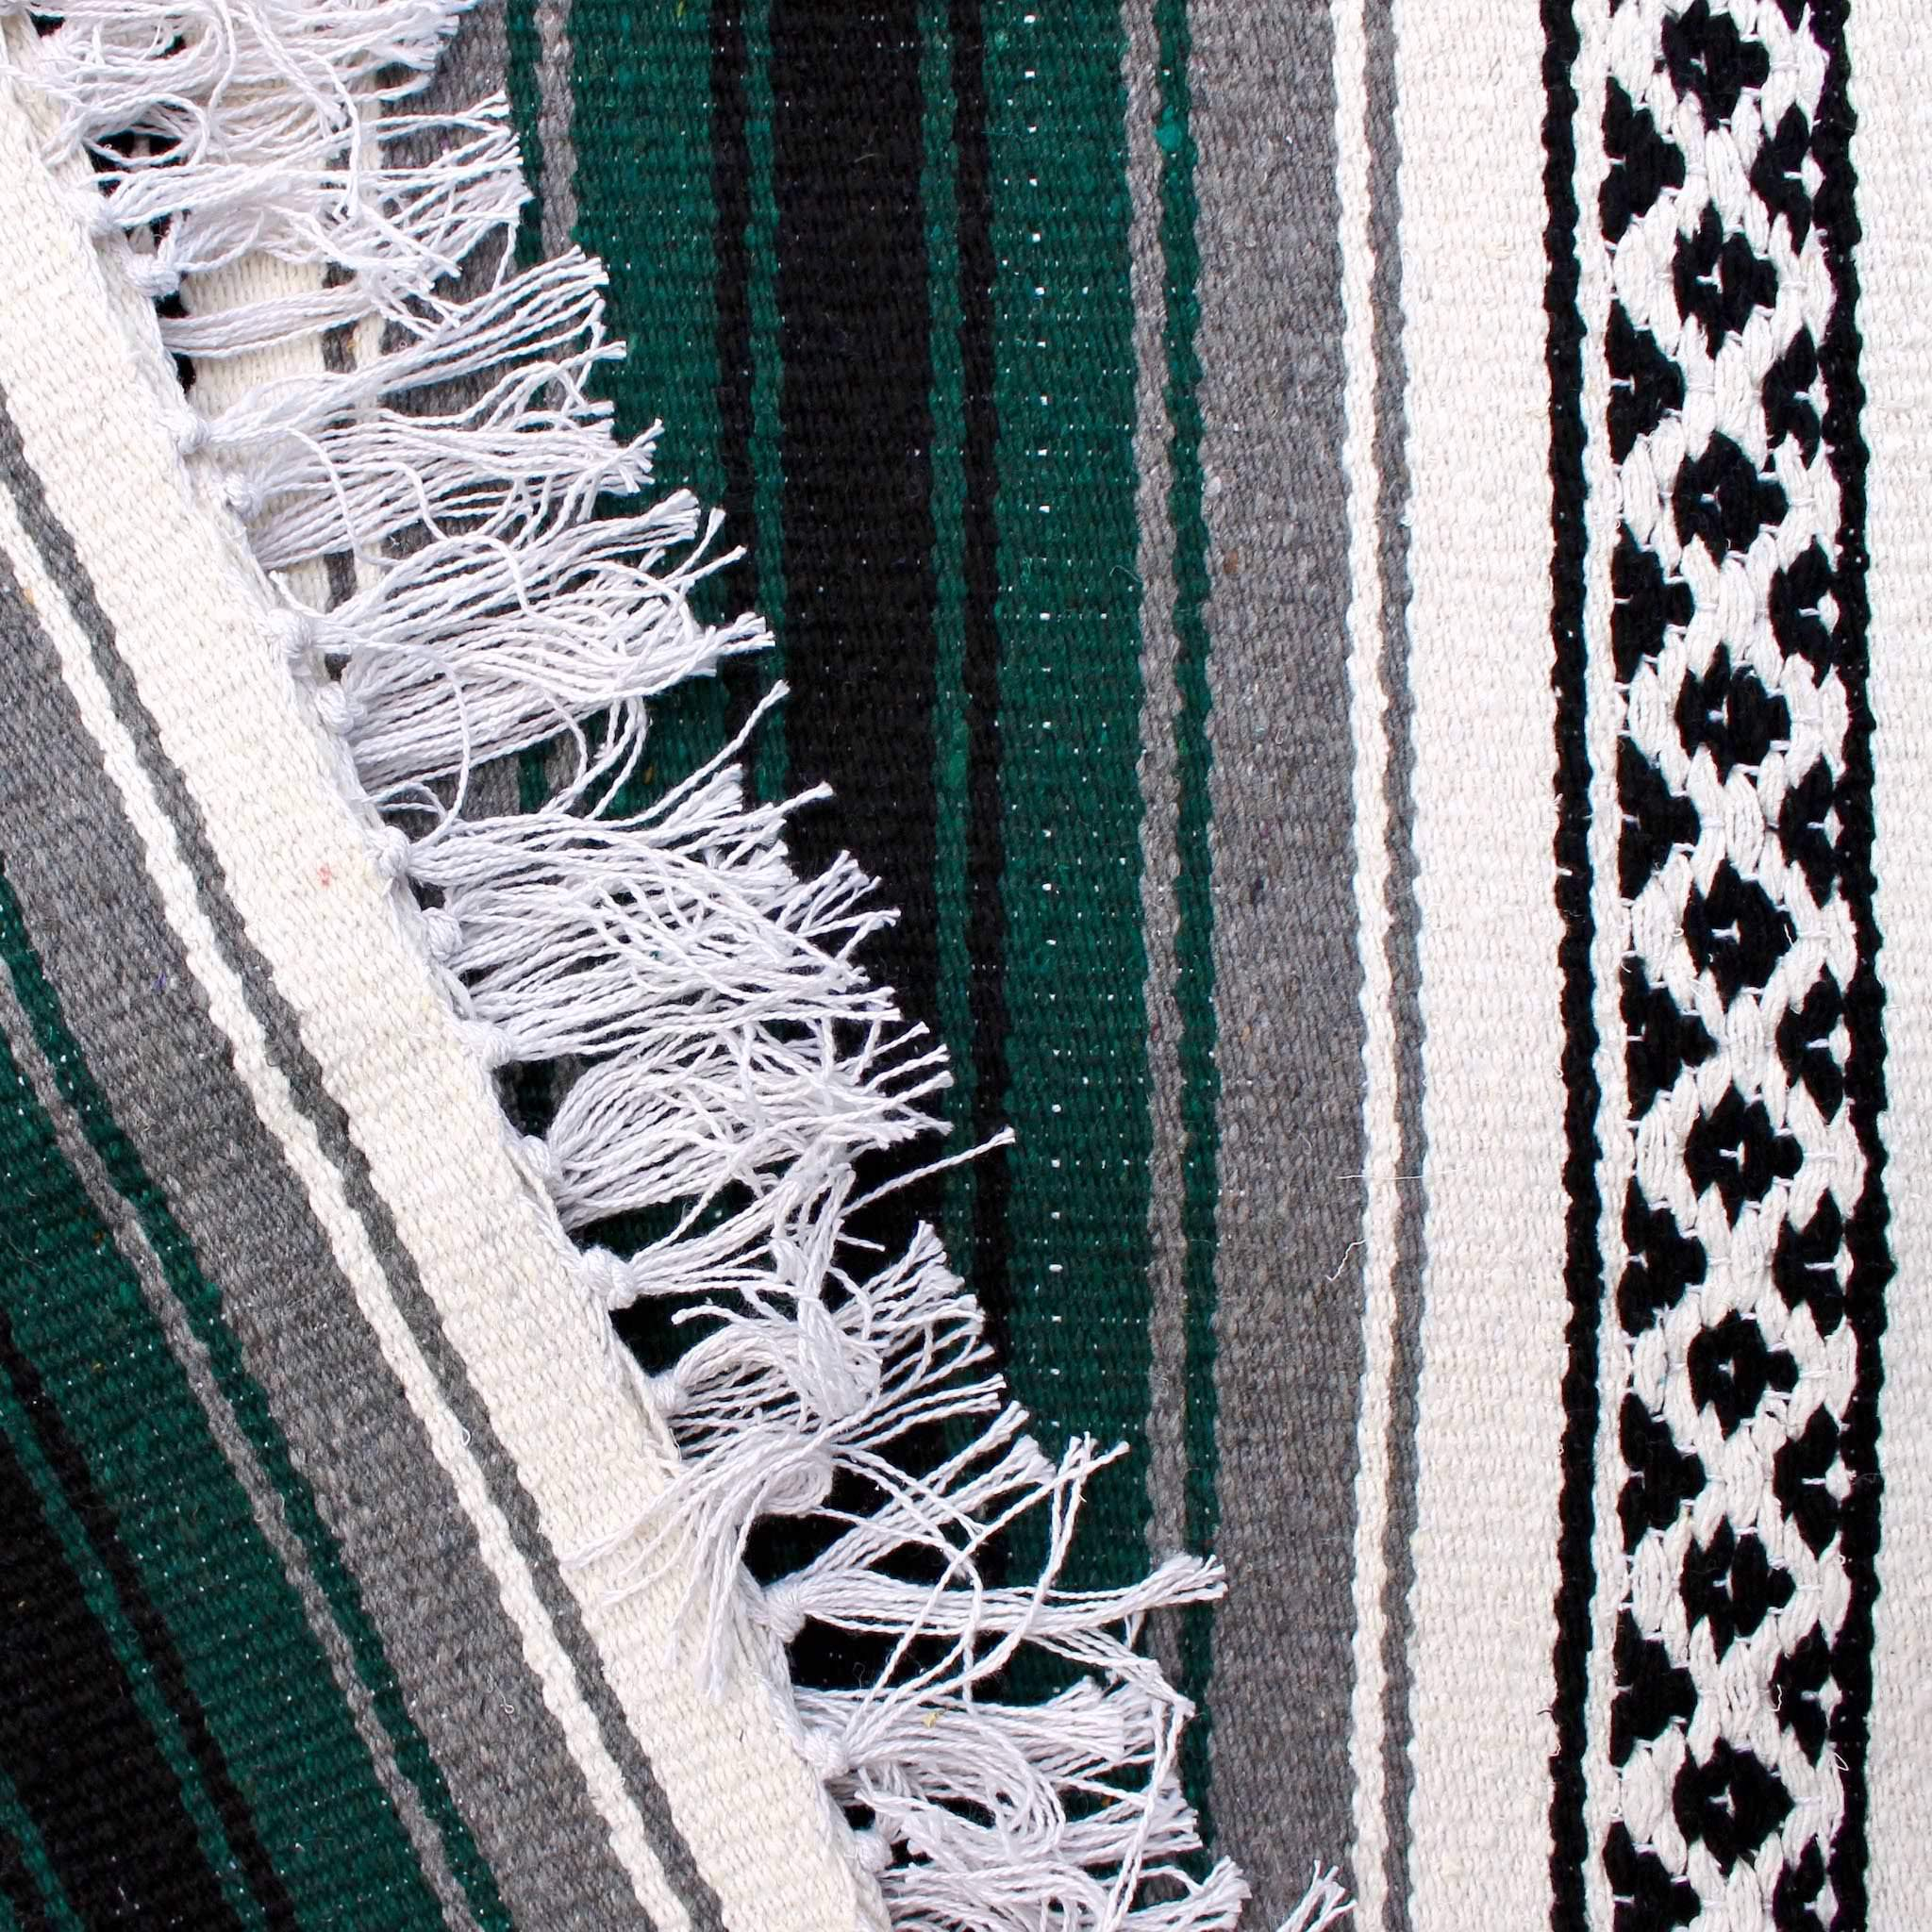 Close-up of blanket woven with alternating solid stripes in white, black, grey and hunter green, and white stripe with pattern of small black diamonds, edge of blanket has white fringe.